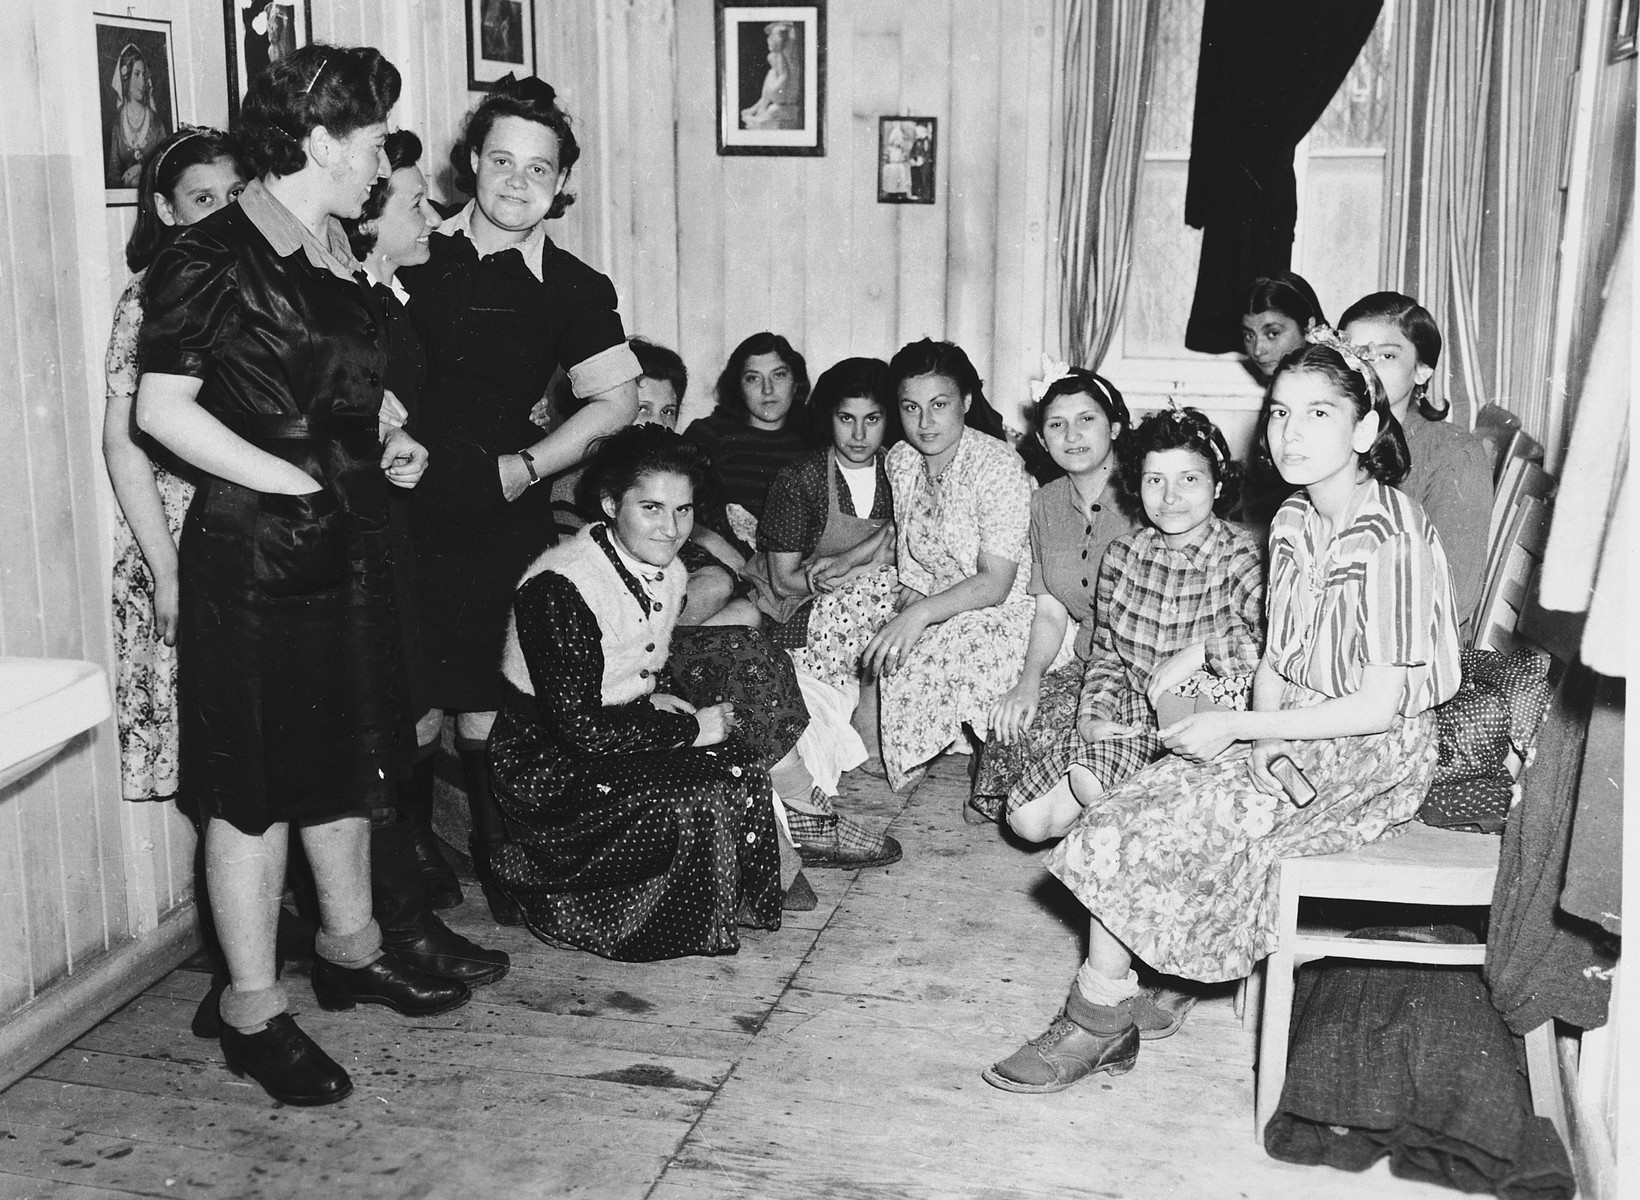 A large group of women gather in a room with curtains after the liberation of the Dachau concentration camp.